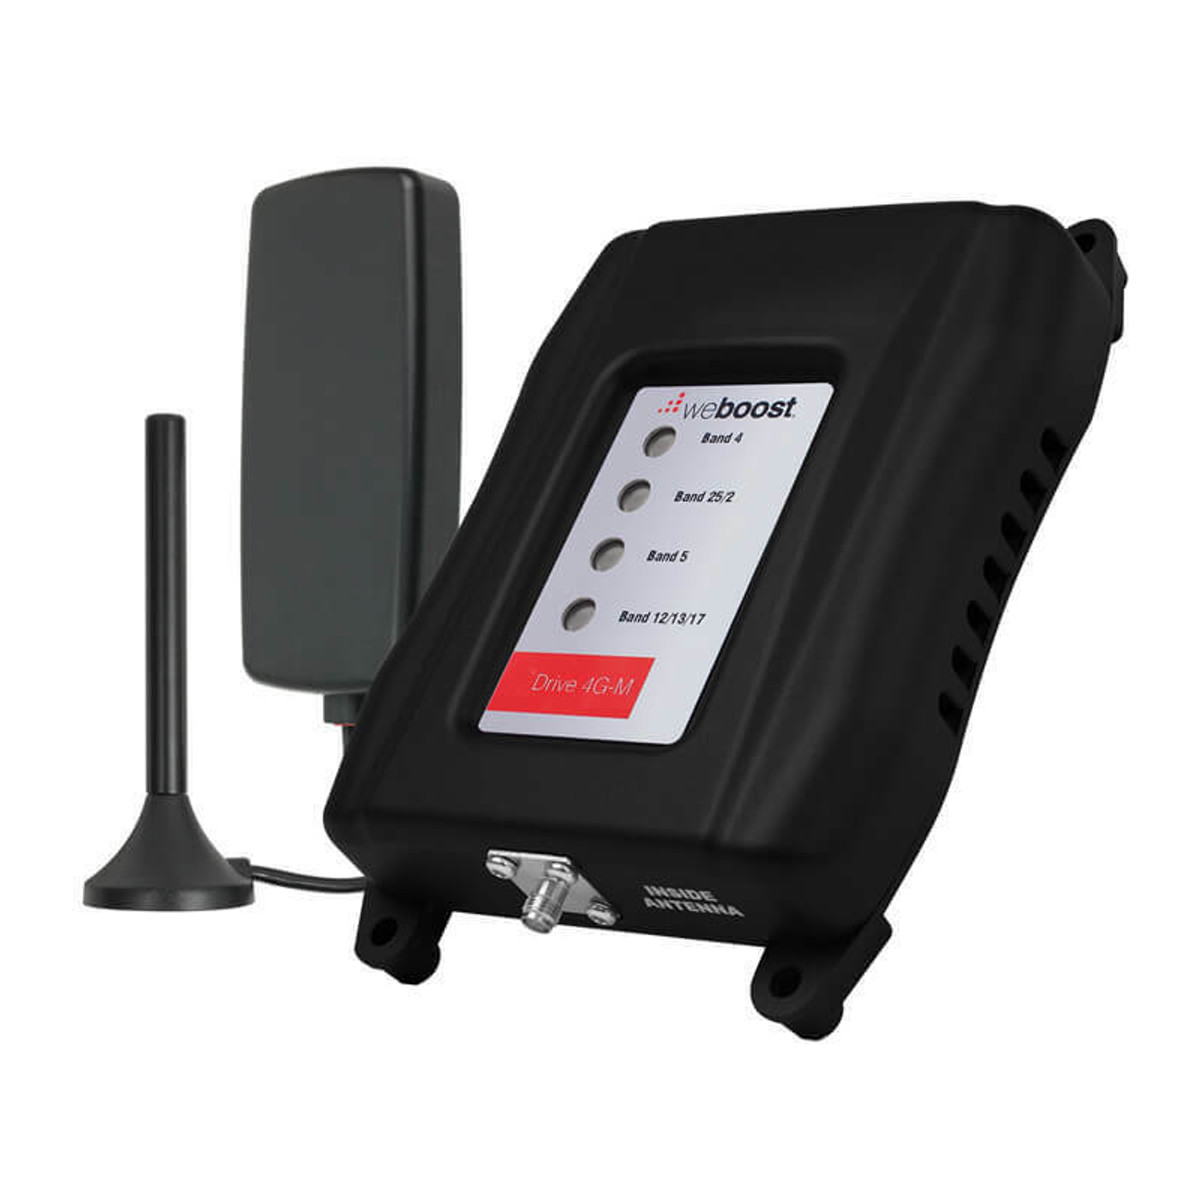 weBoost weBoost Drive 4G-M Cell Phone Signal Booster or 470121R Formerly 470108R